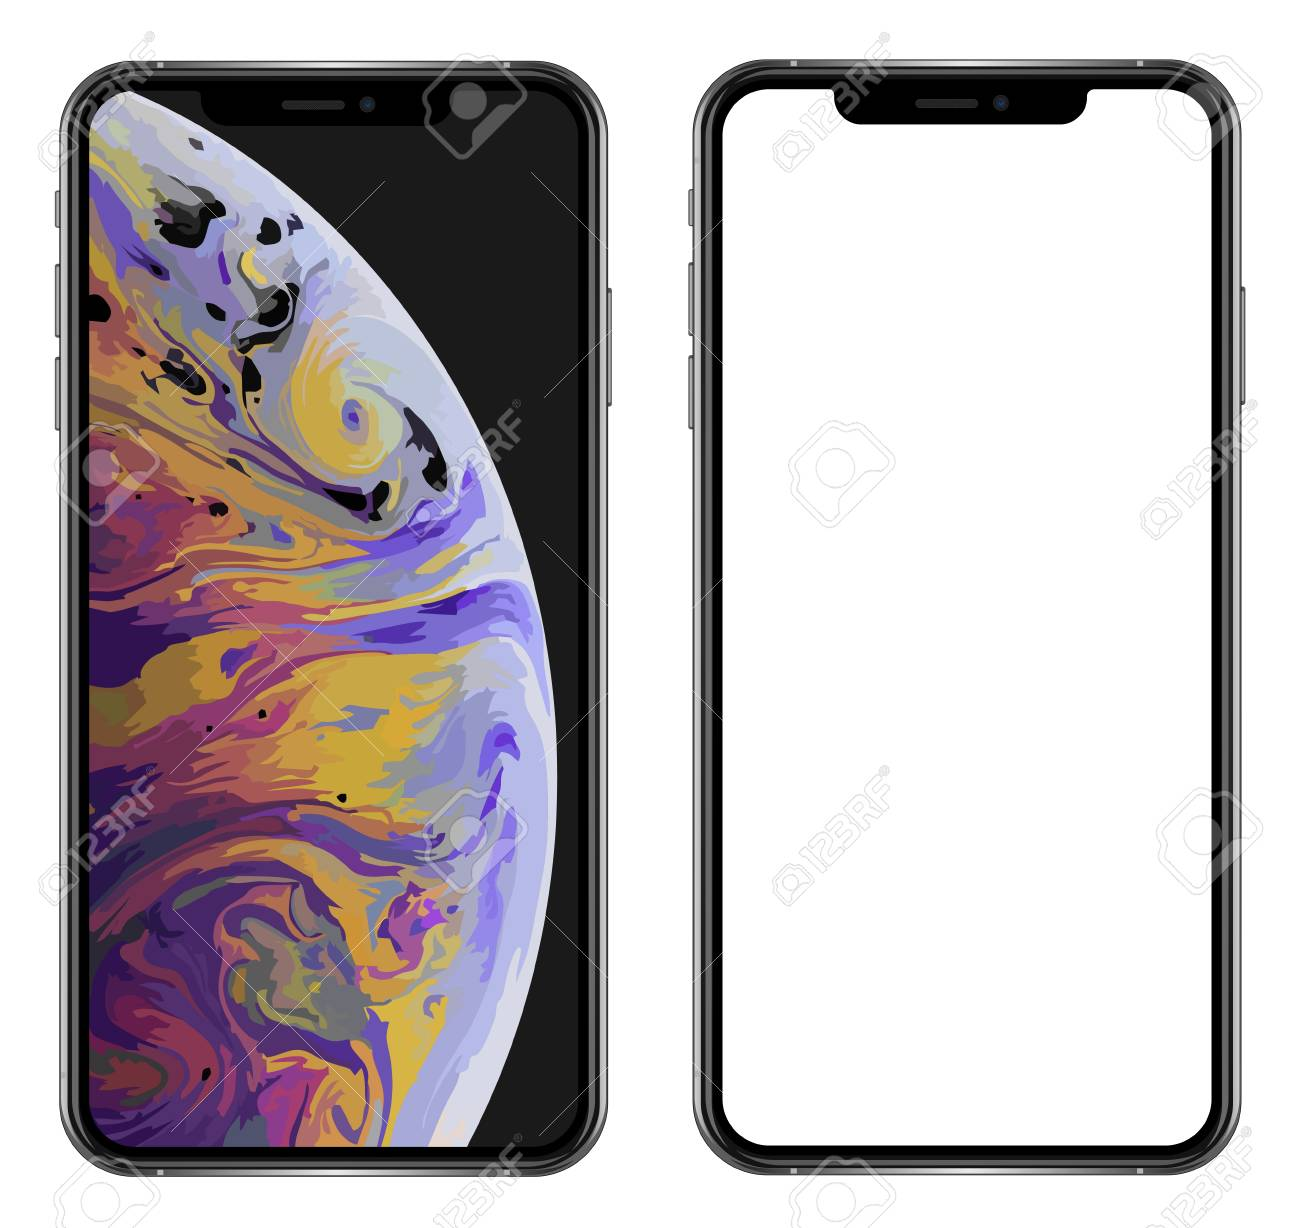 newest iphone xs max